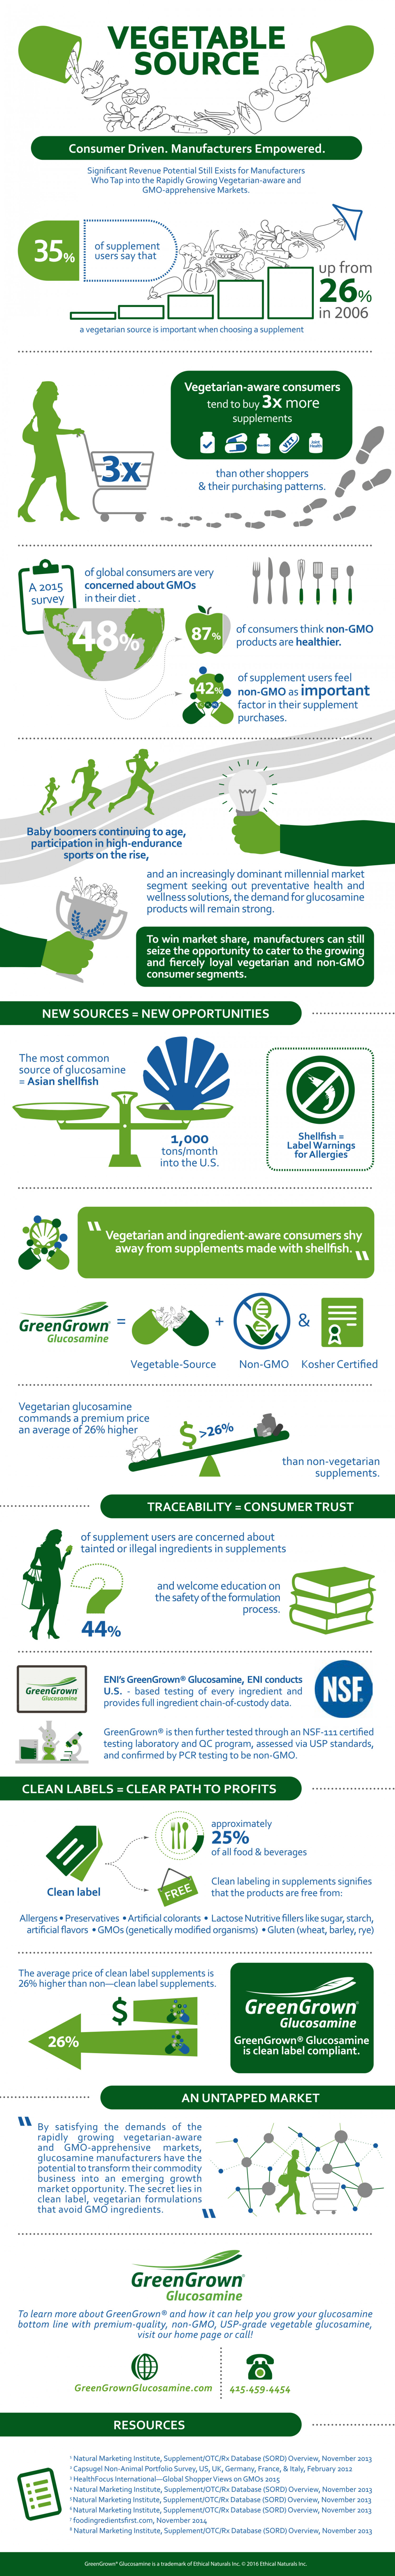 Vegetable Source  Infographic